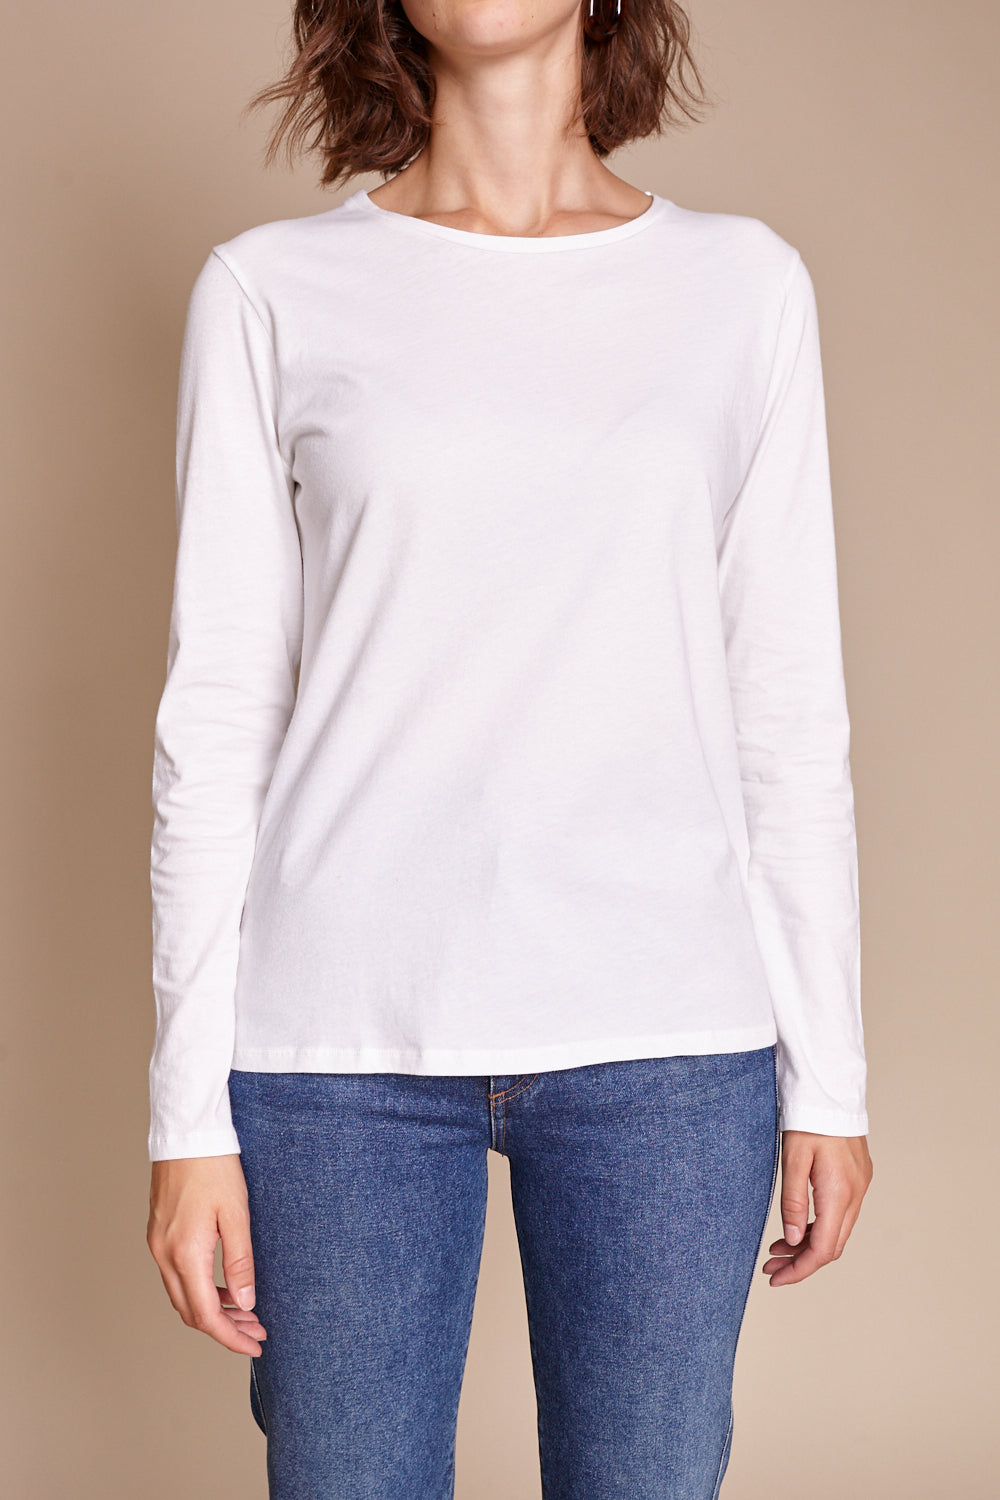 Silk-Touch L/S Crew in Blanc